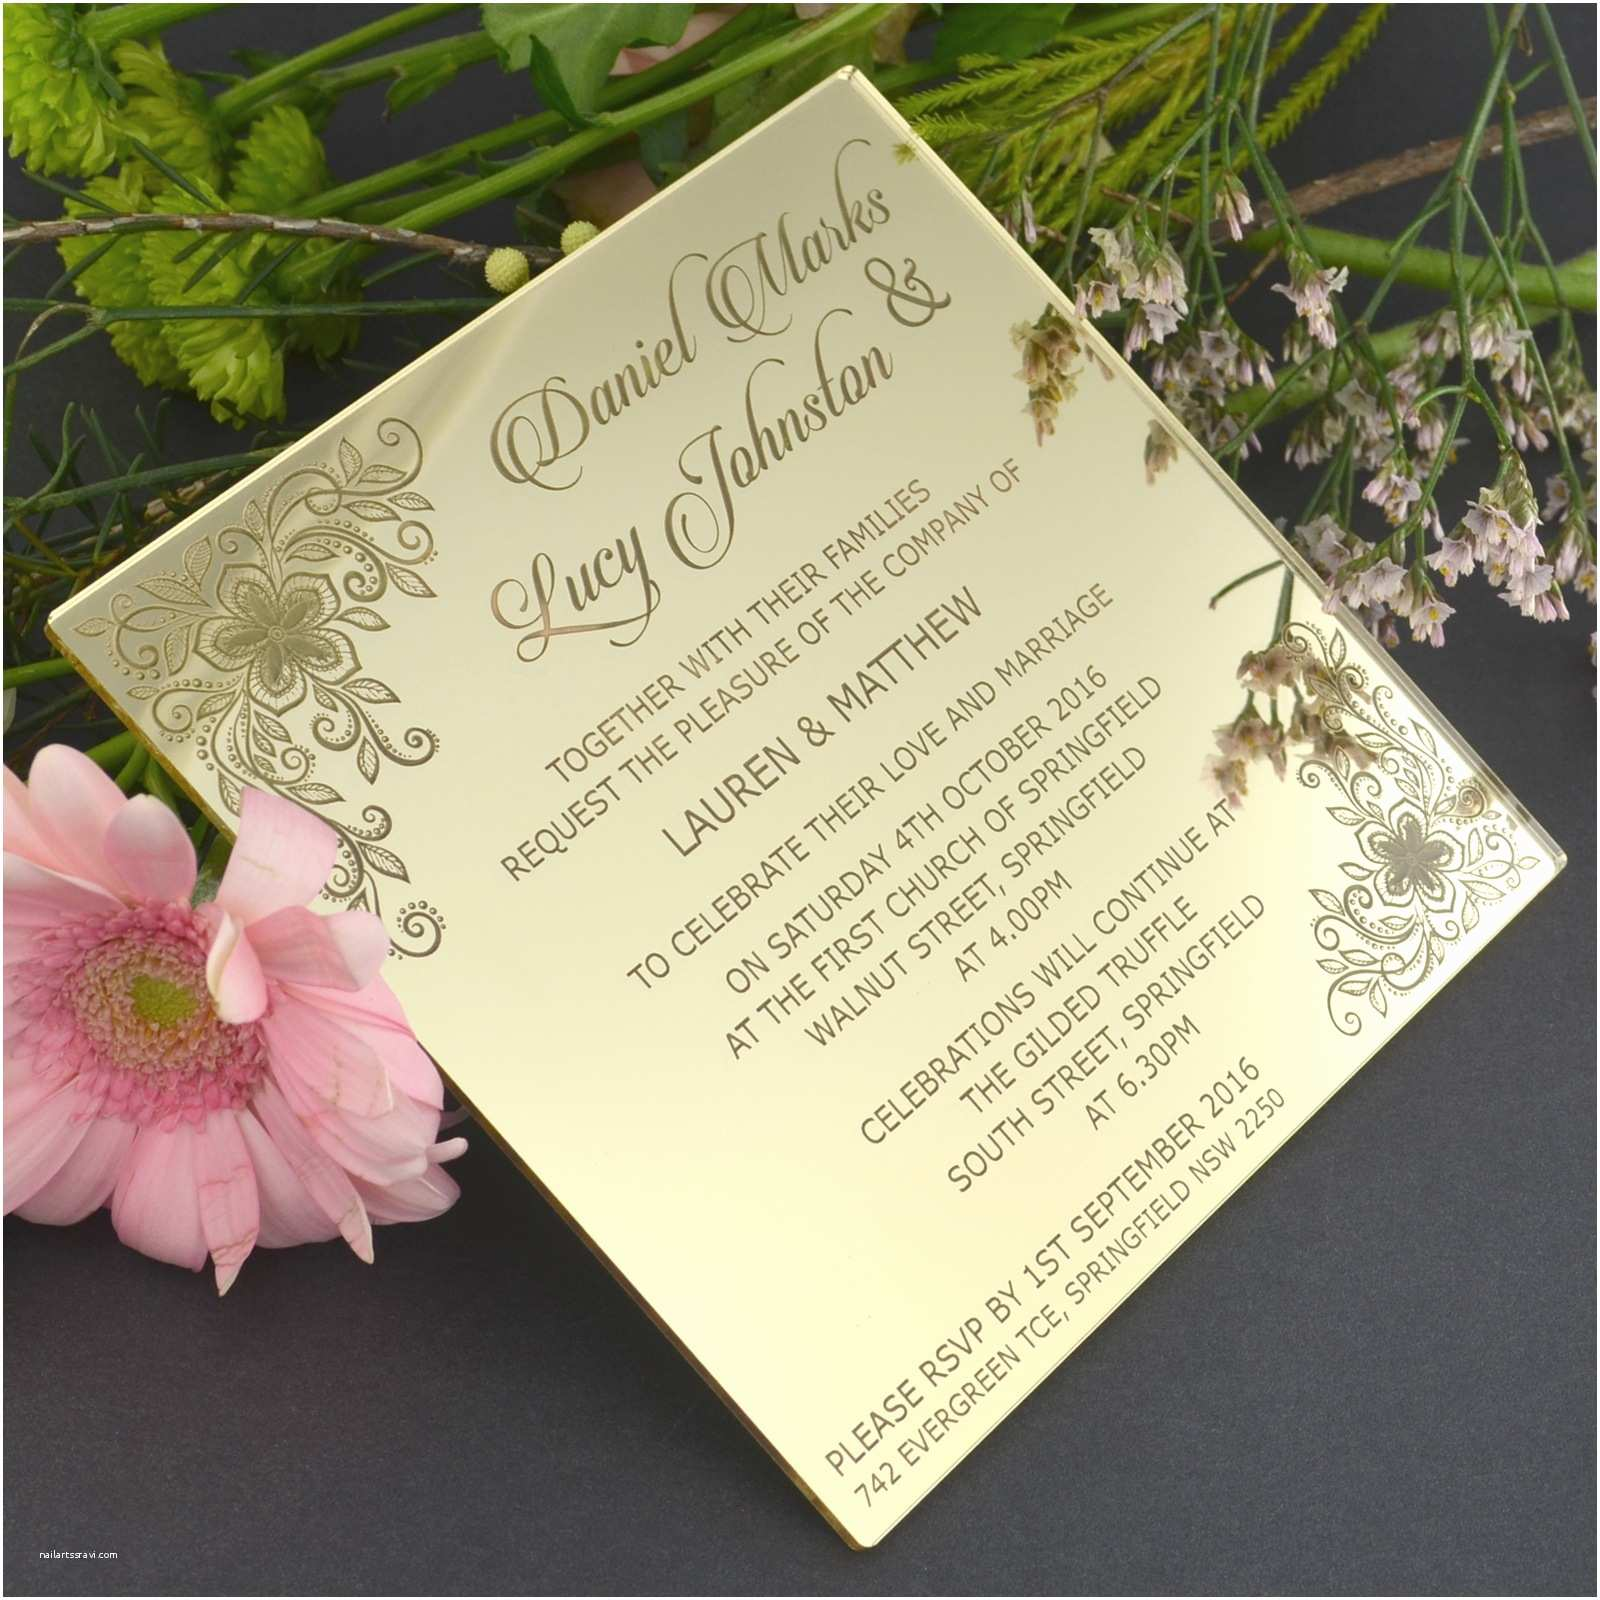 Engraved Wedding Invitations C6 Engraved Acrylic Wedding Invitations Engraved Wedding